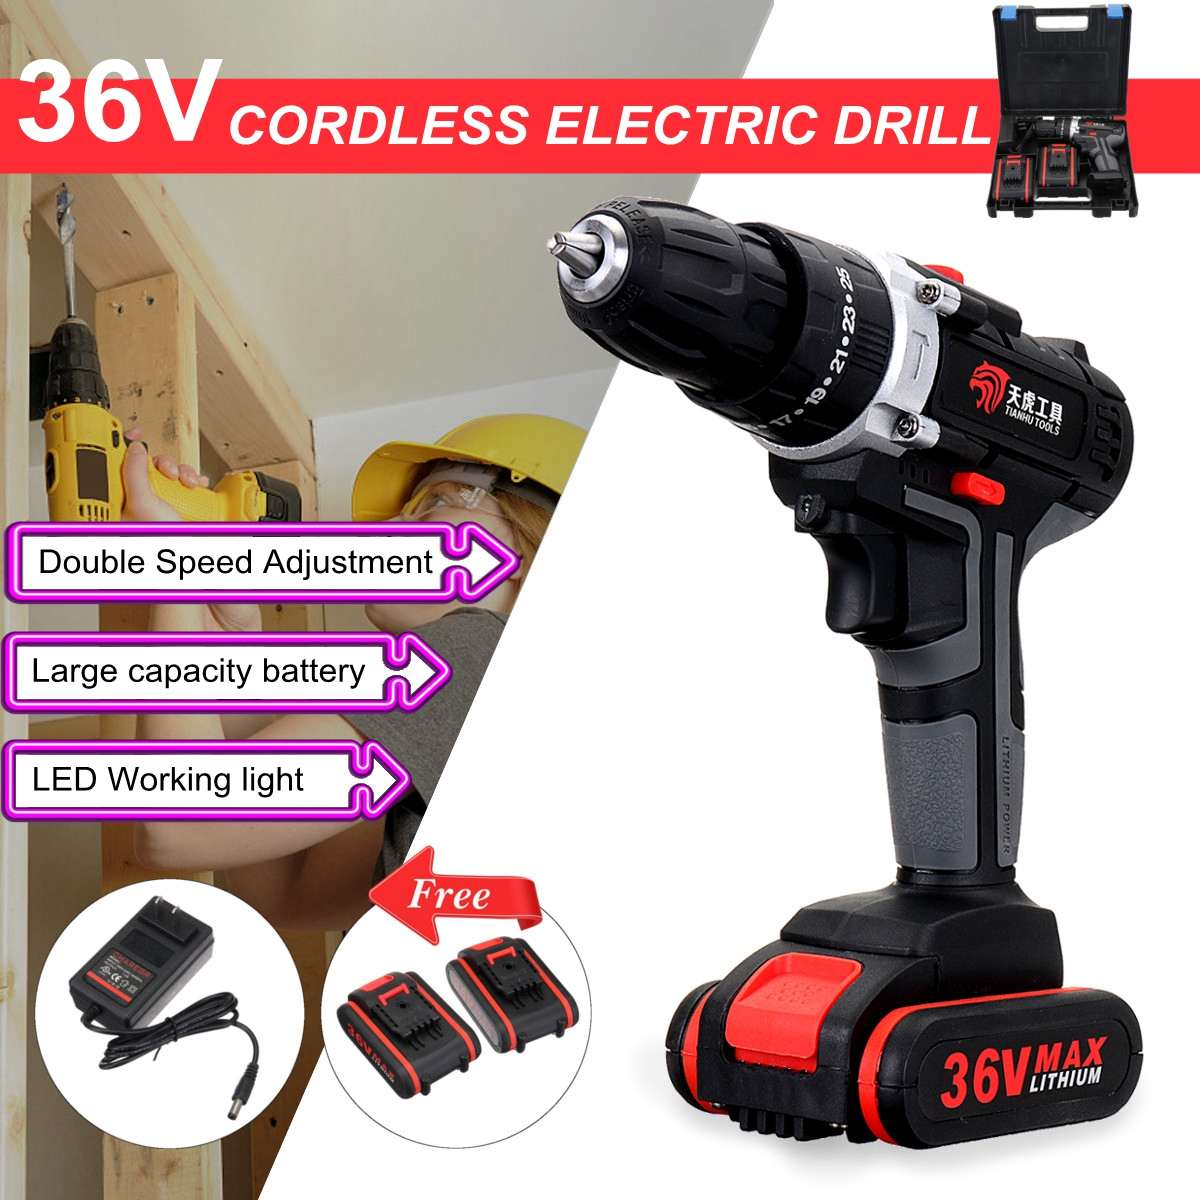 36V Electric Cordless Drill Double-Speed Adjustment LED lighting Electric Drill Household Drill Tools set36V Electric Cordless Drill Double-Speed Adjustment LED lighting Electric Drill Household Drill Tools set